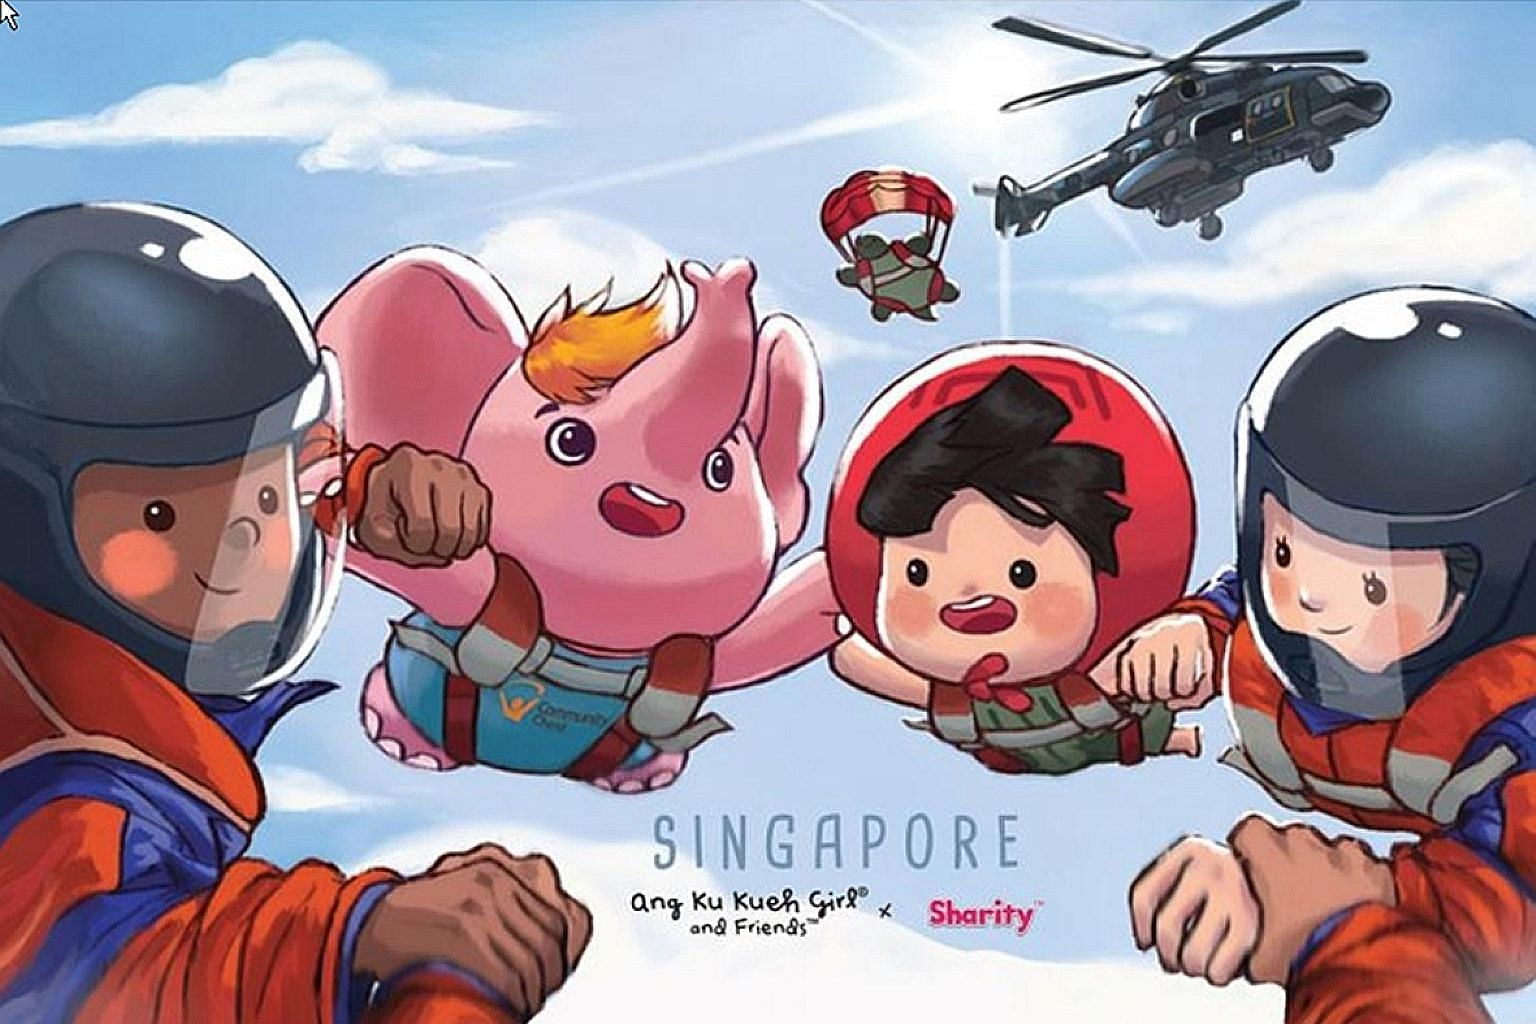 The two National Day-themed EZ-Link card designs feature Sharity and Ang Ku Kueh Girl alongside NDP crowd favourites such as the Red Lions and the Black Knights.